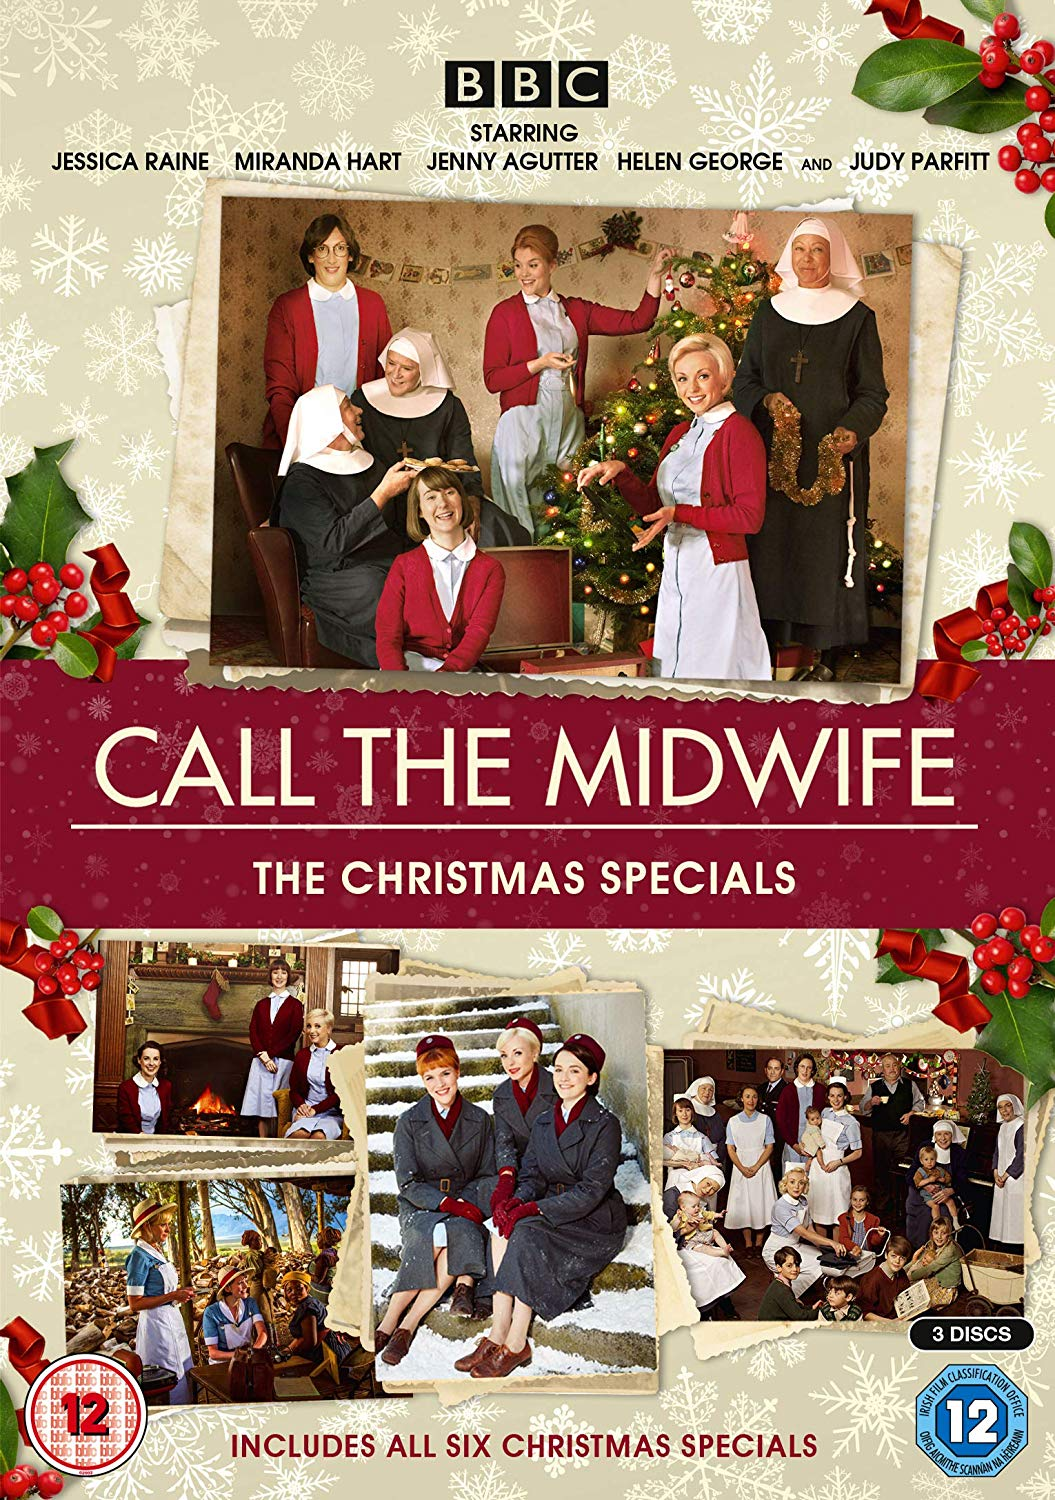 Call The Midwife Christmas Special.Call The Midwife The Christmas Specials Heidi Thomas Dvd